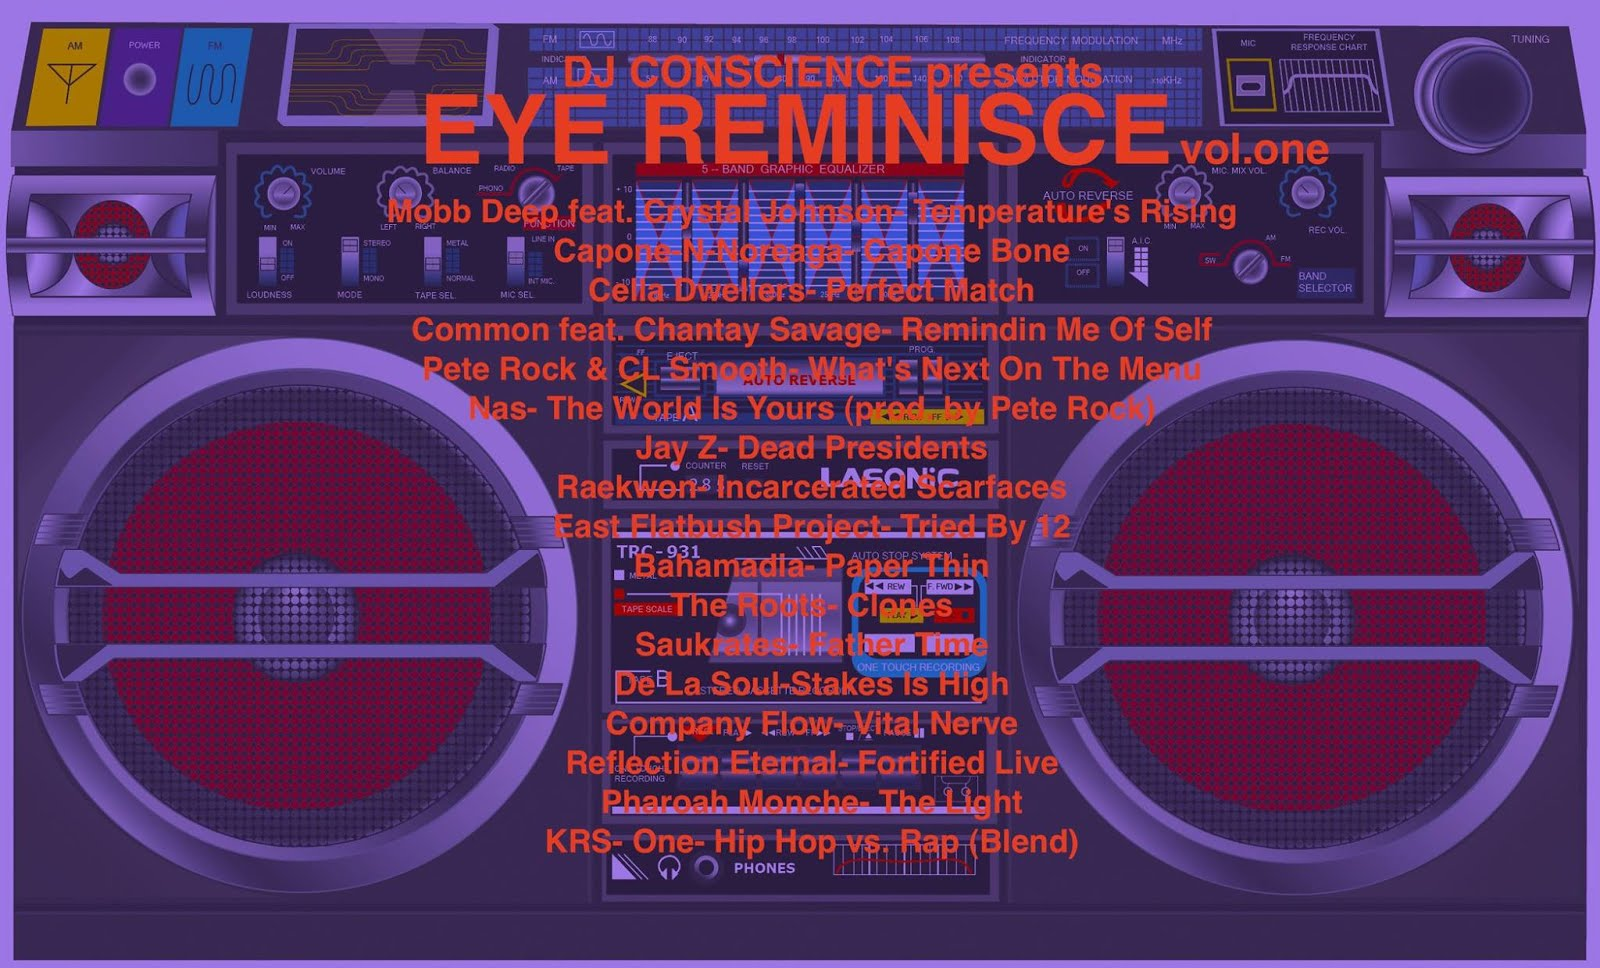 EYE REMINISCE by DJ CONSCIENCE